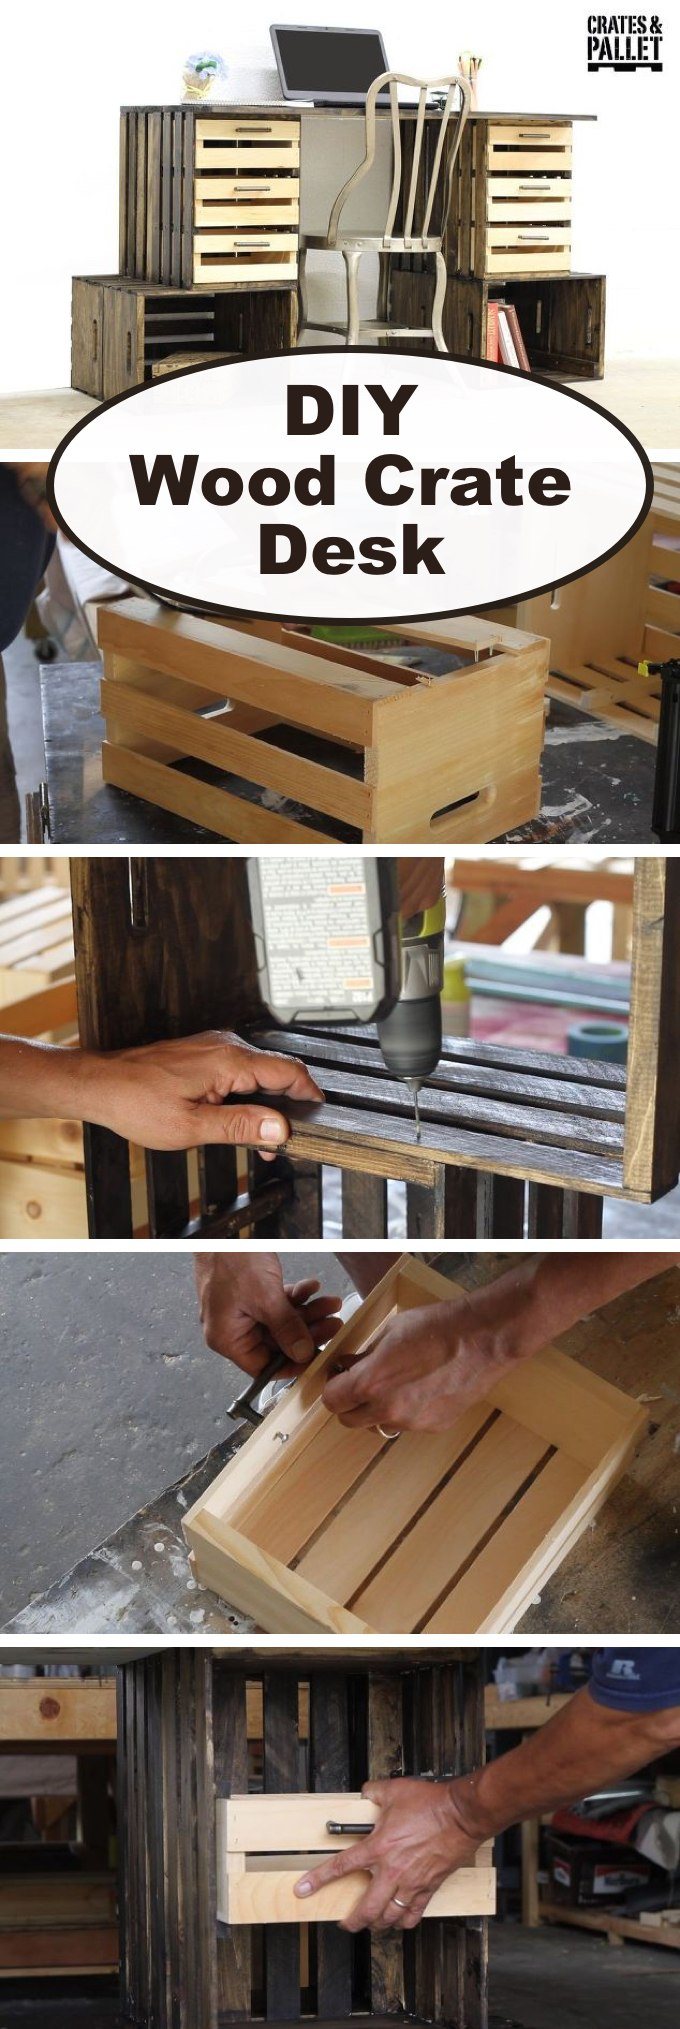 DIY Wood Crate Desk